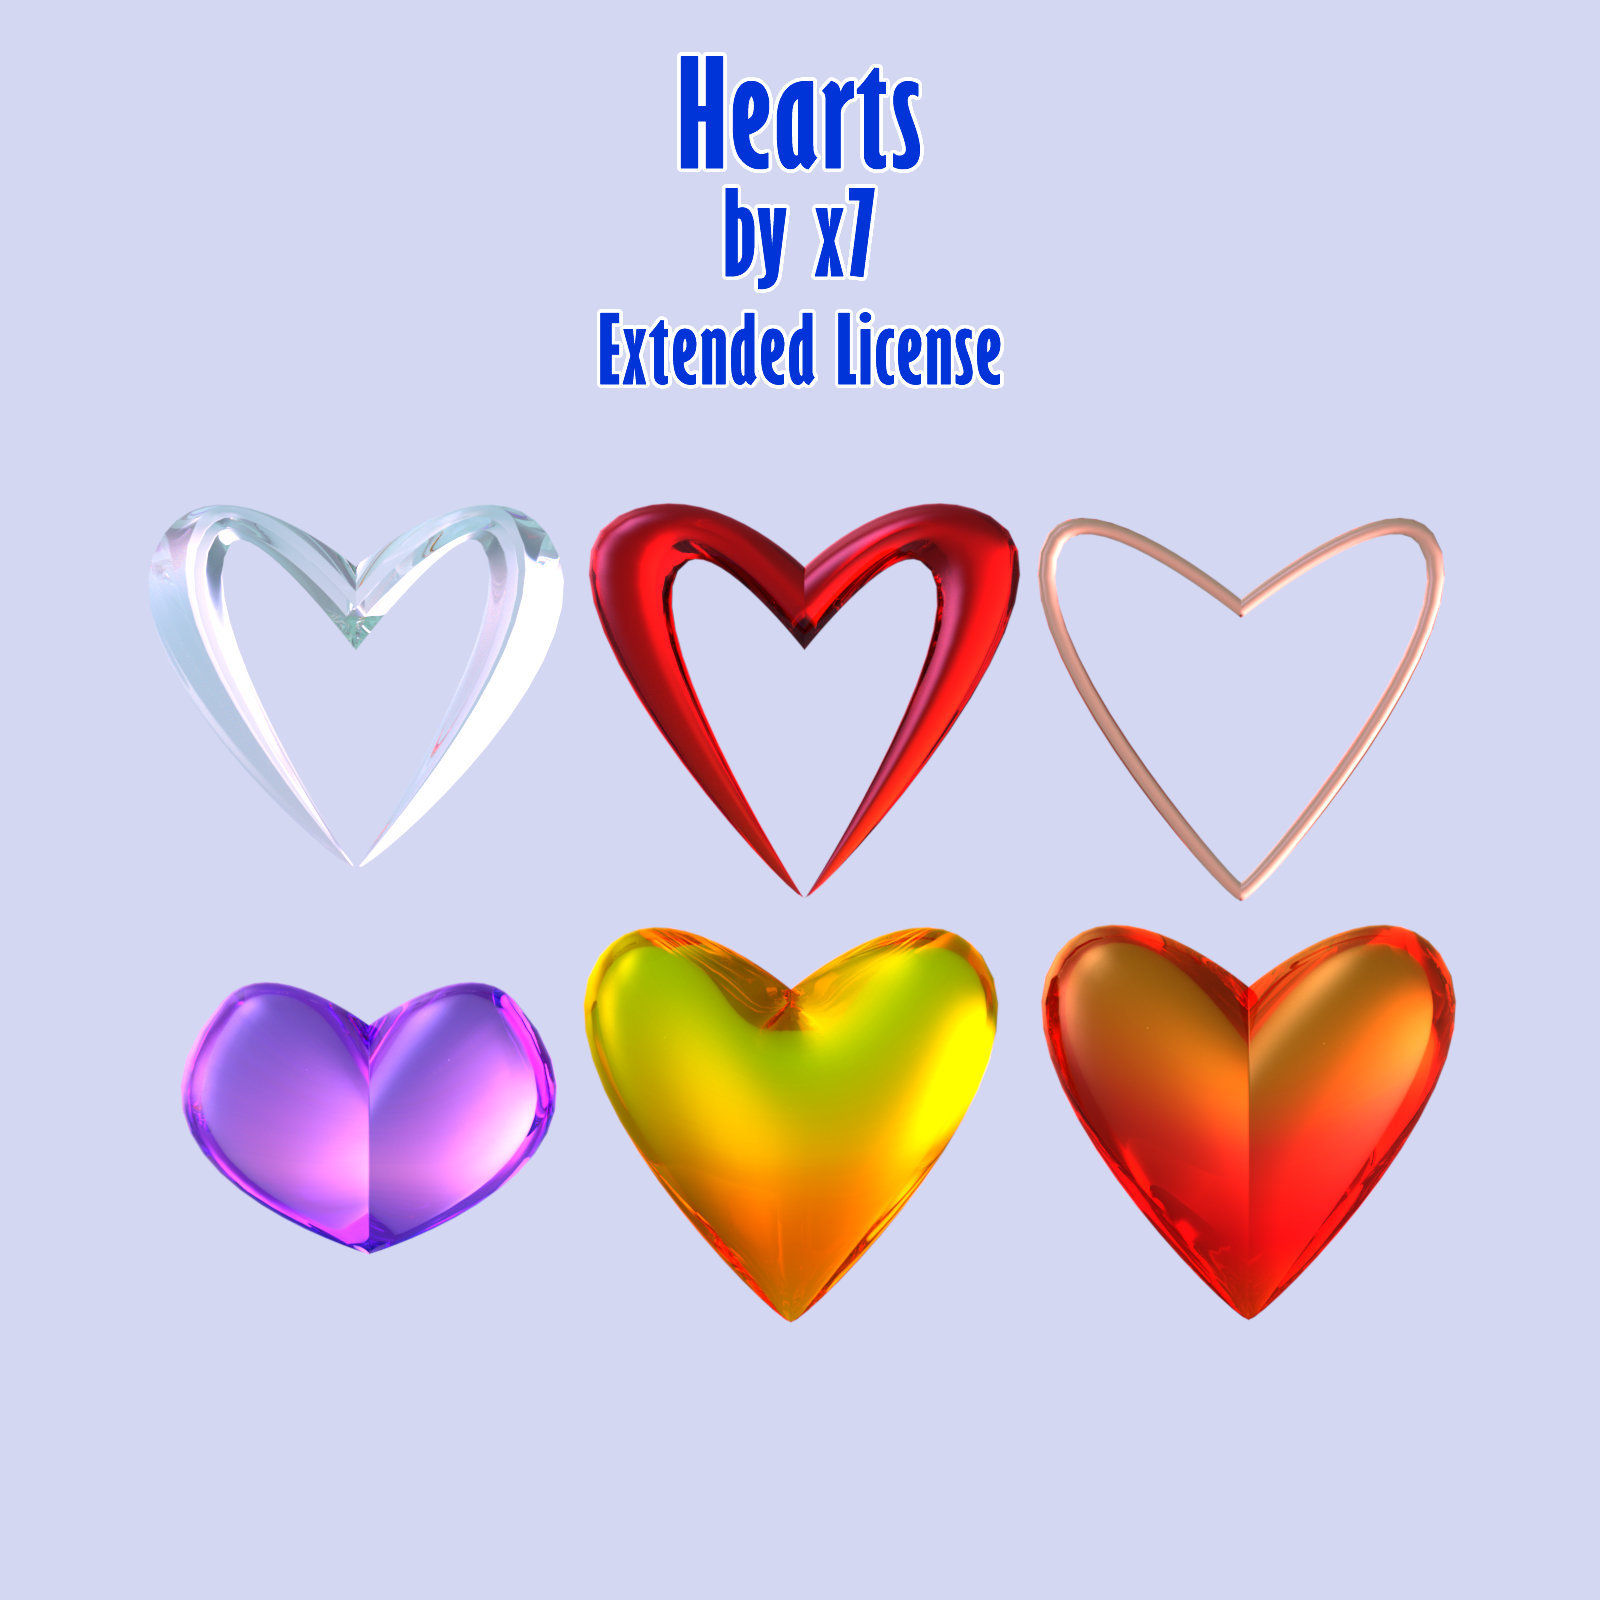 Hearts by x7 - Extended License